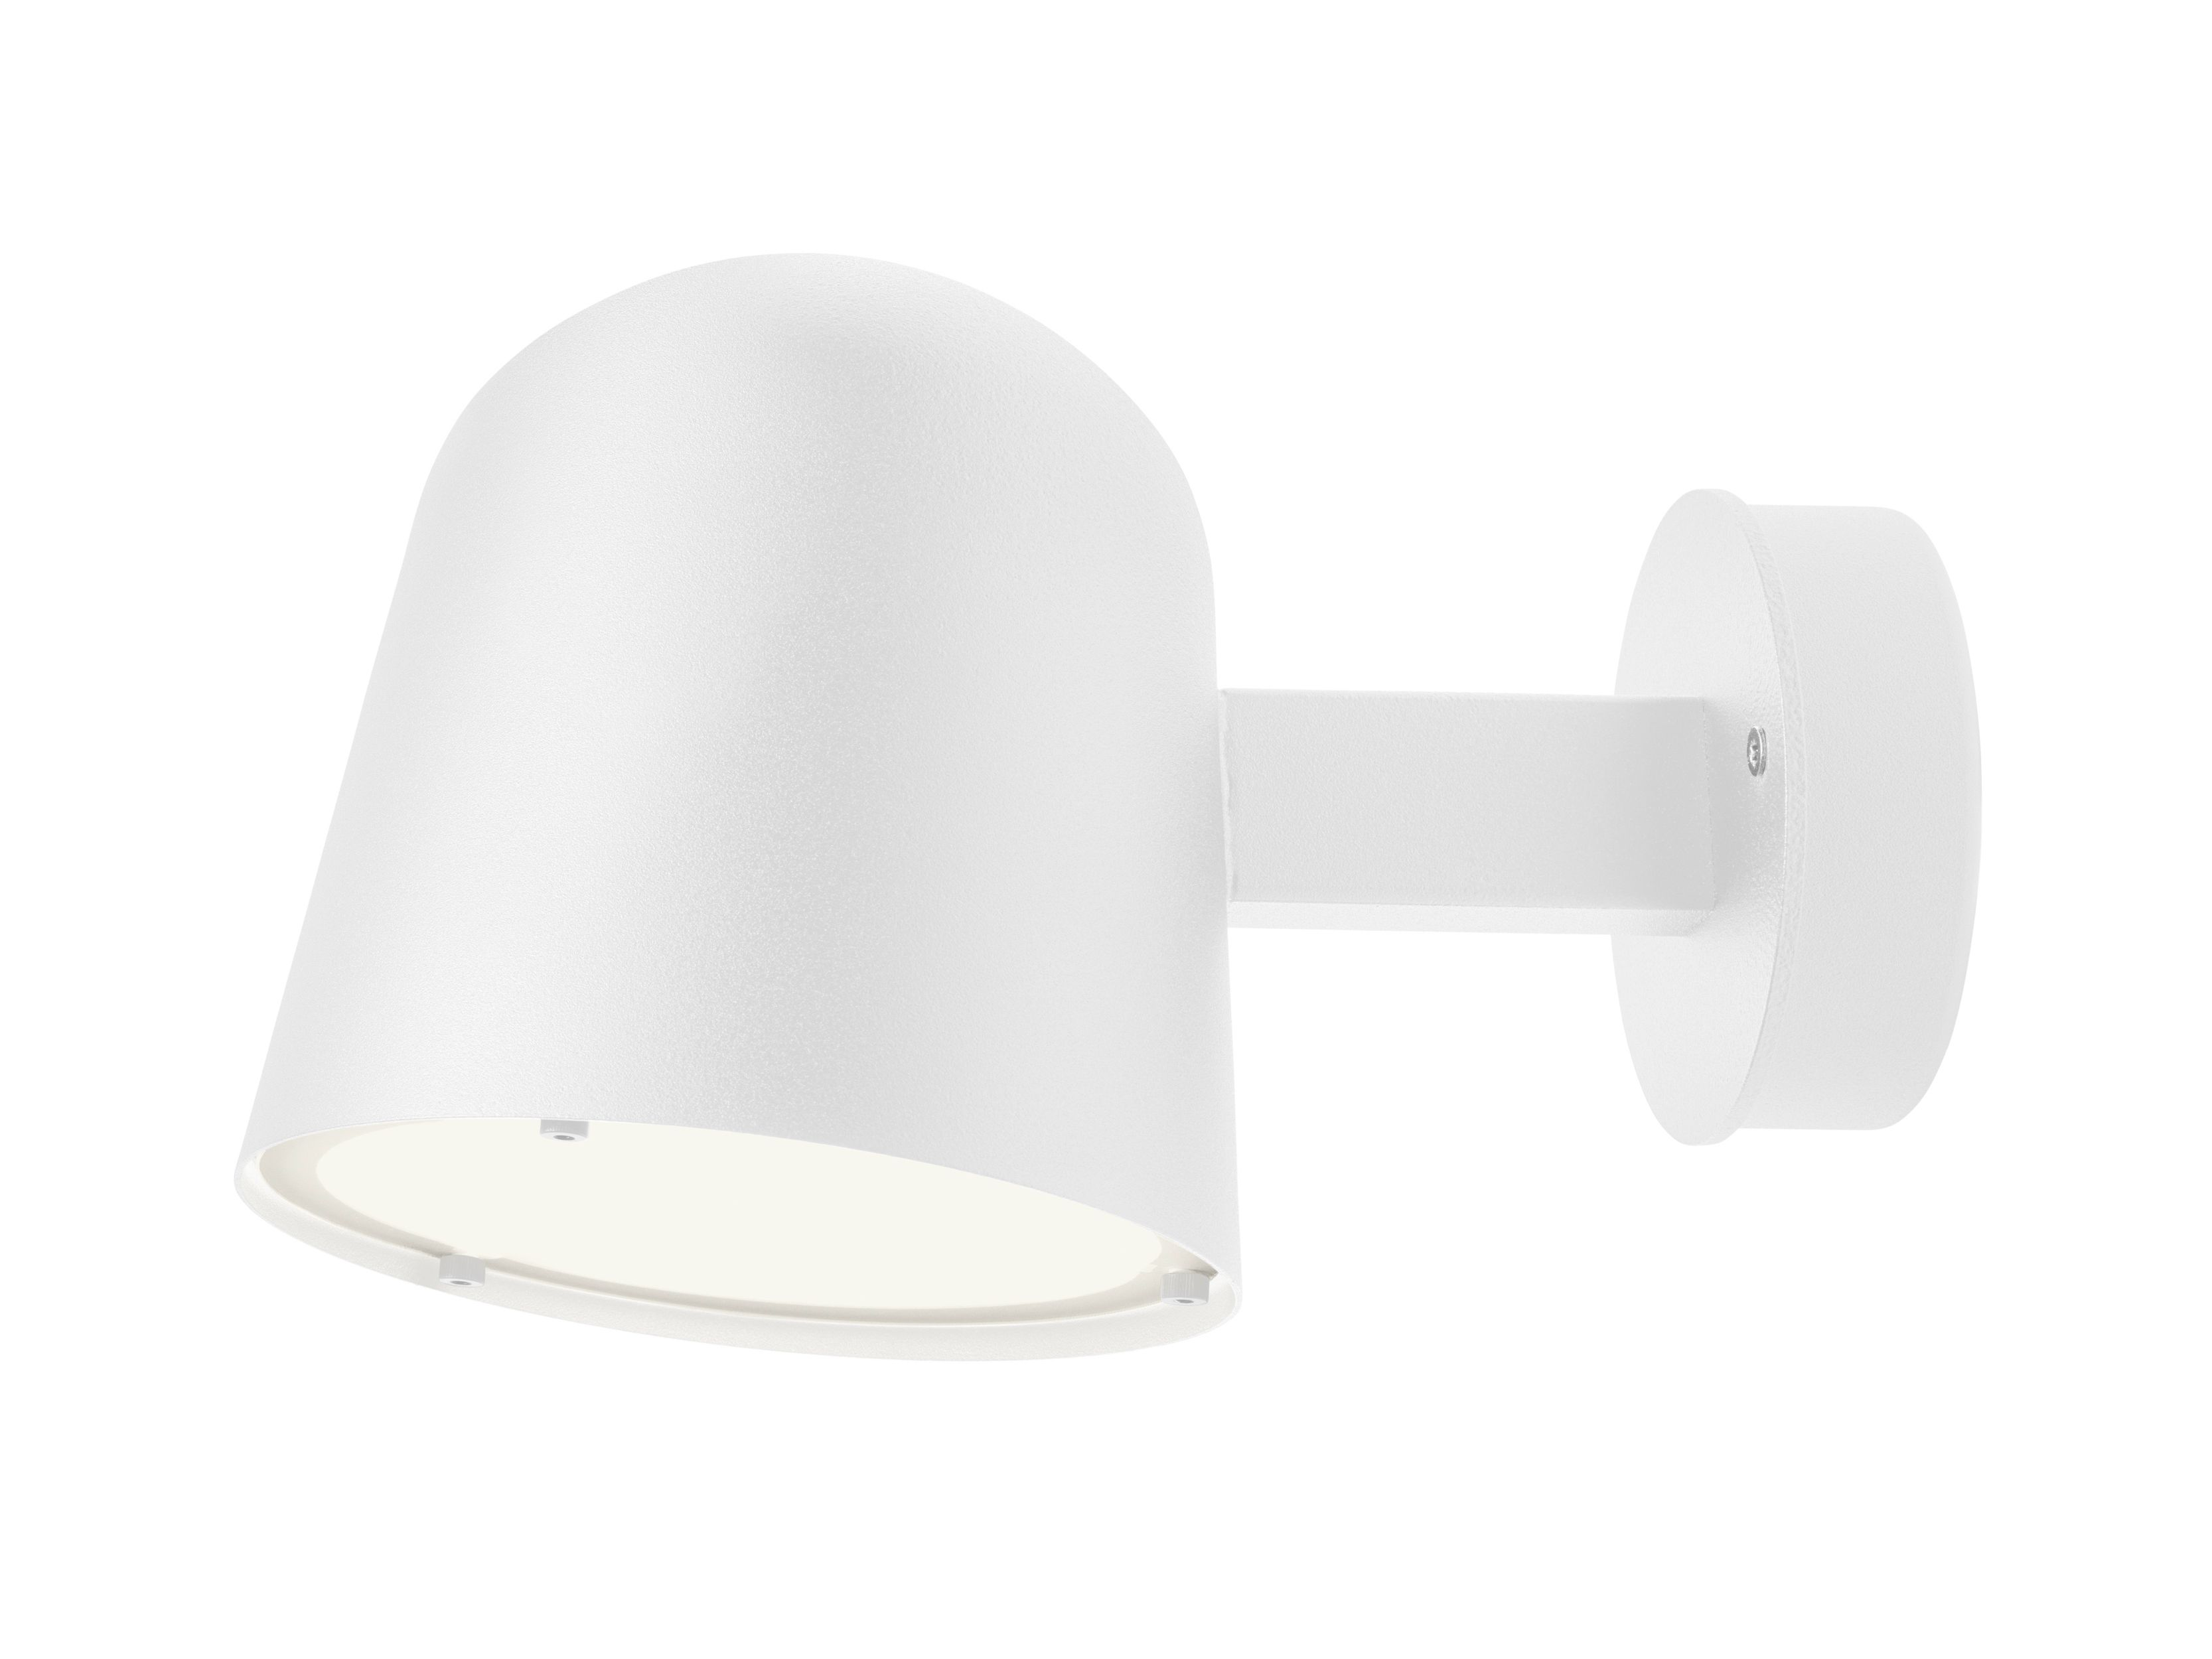 Convex Wall Lamp By Zero Design Jens Fager Wall Lamp Wall Lamp Design Lamp